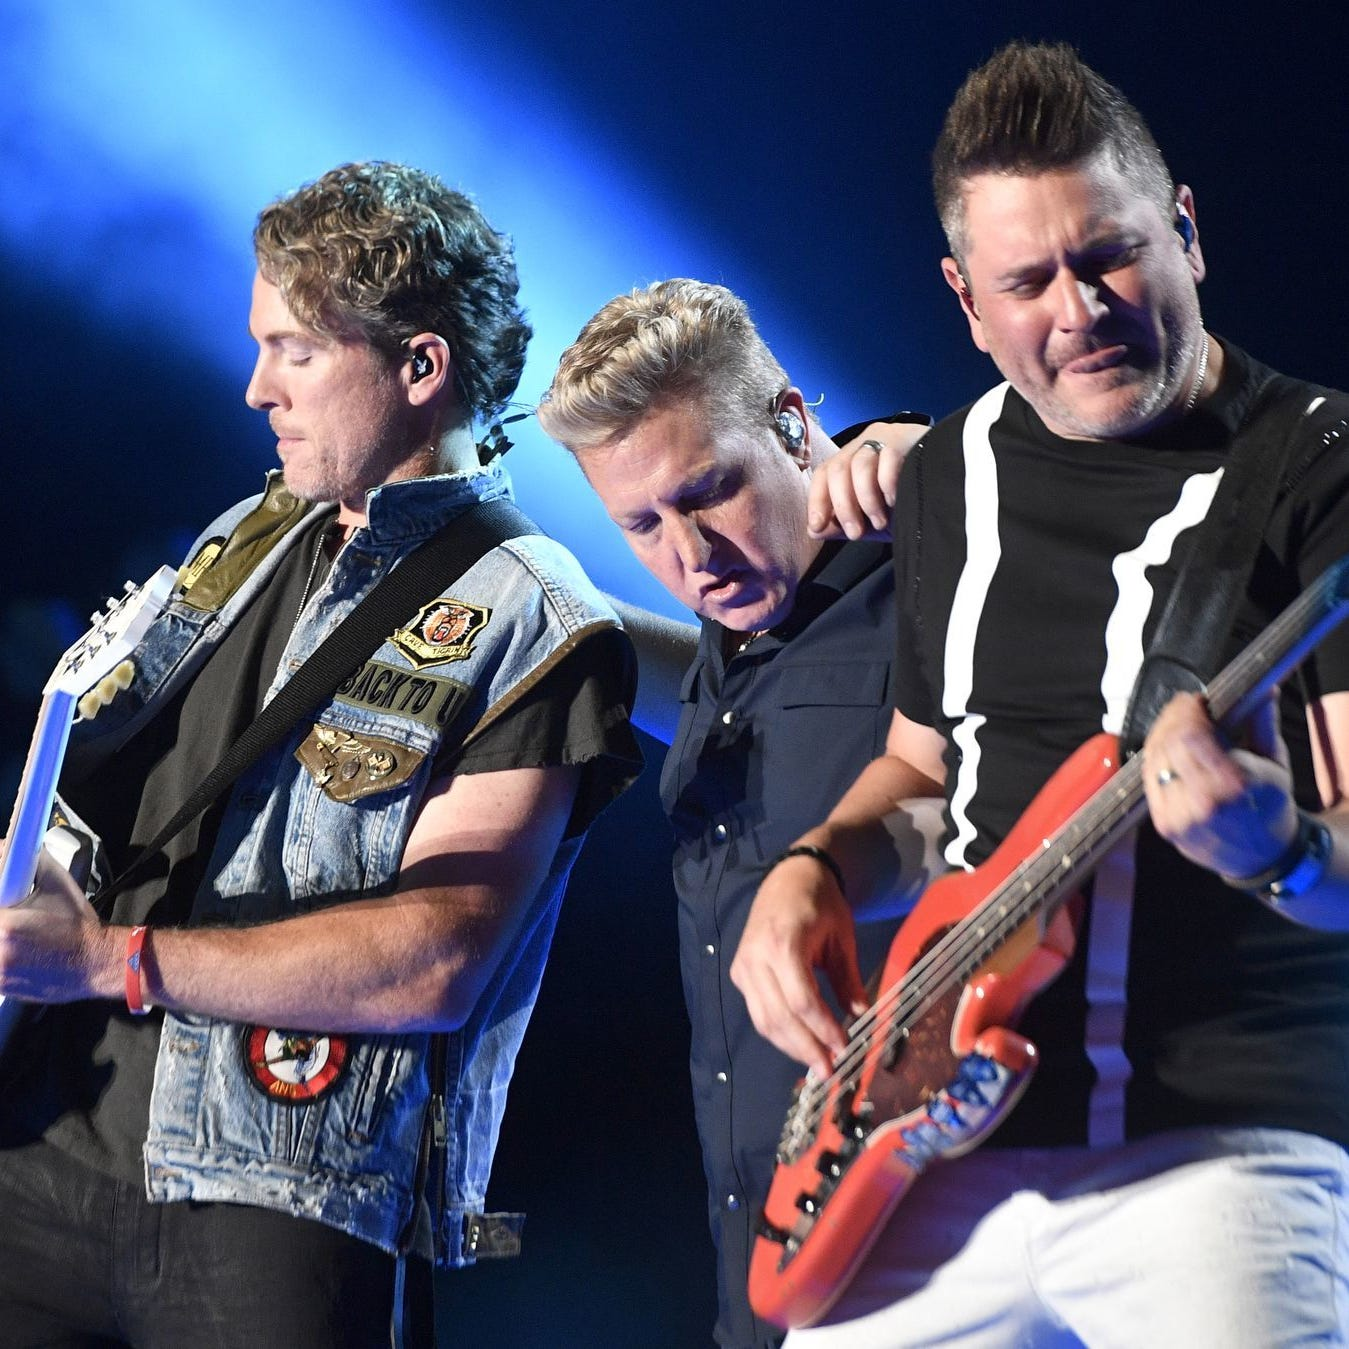 Rascal Flatts vocalist: Bomb threat made across multiple phone calls